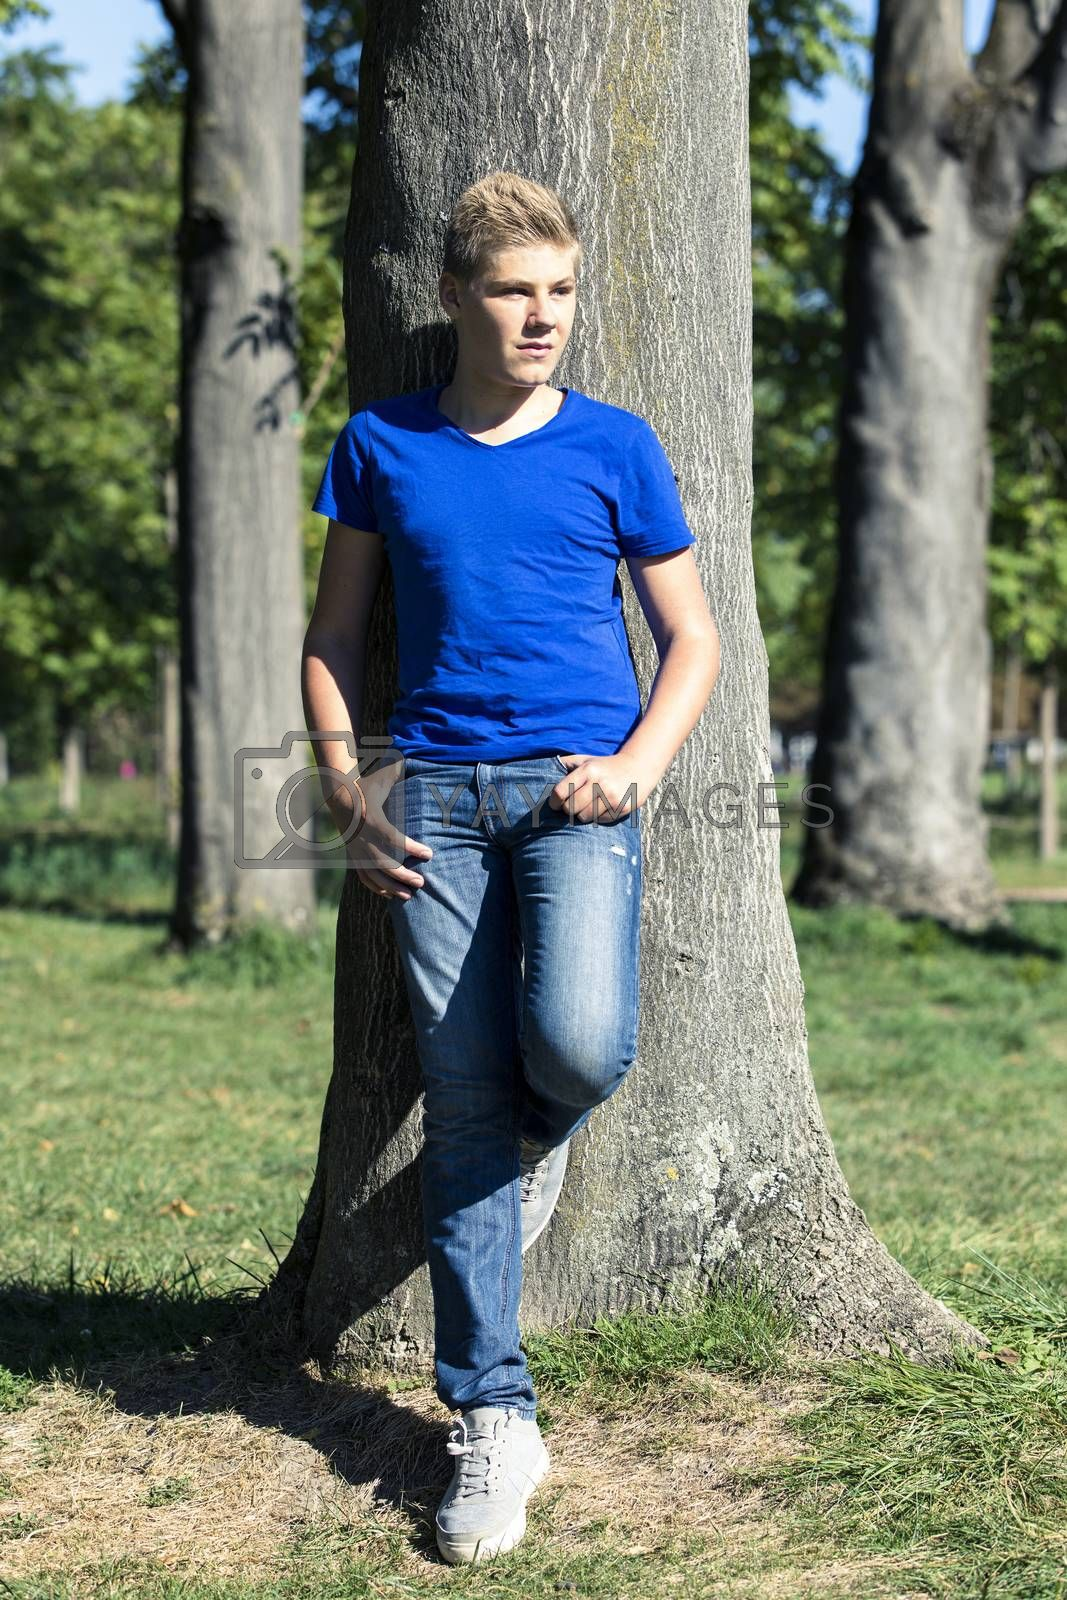 Teenager in a park on summer